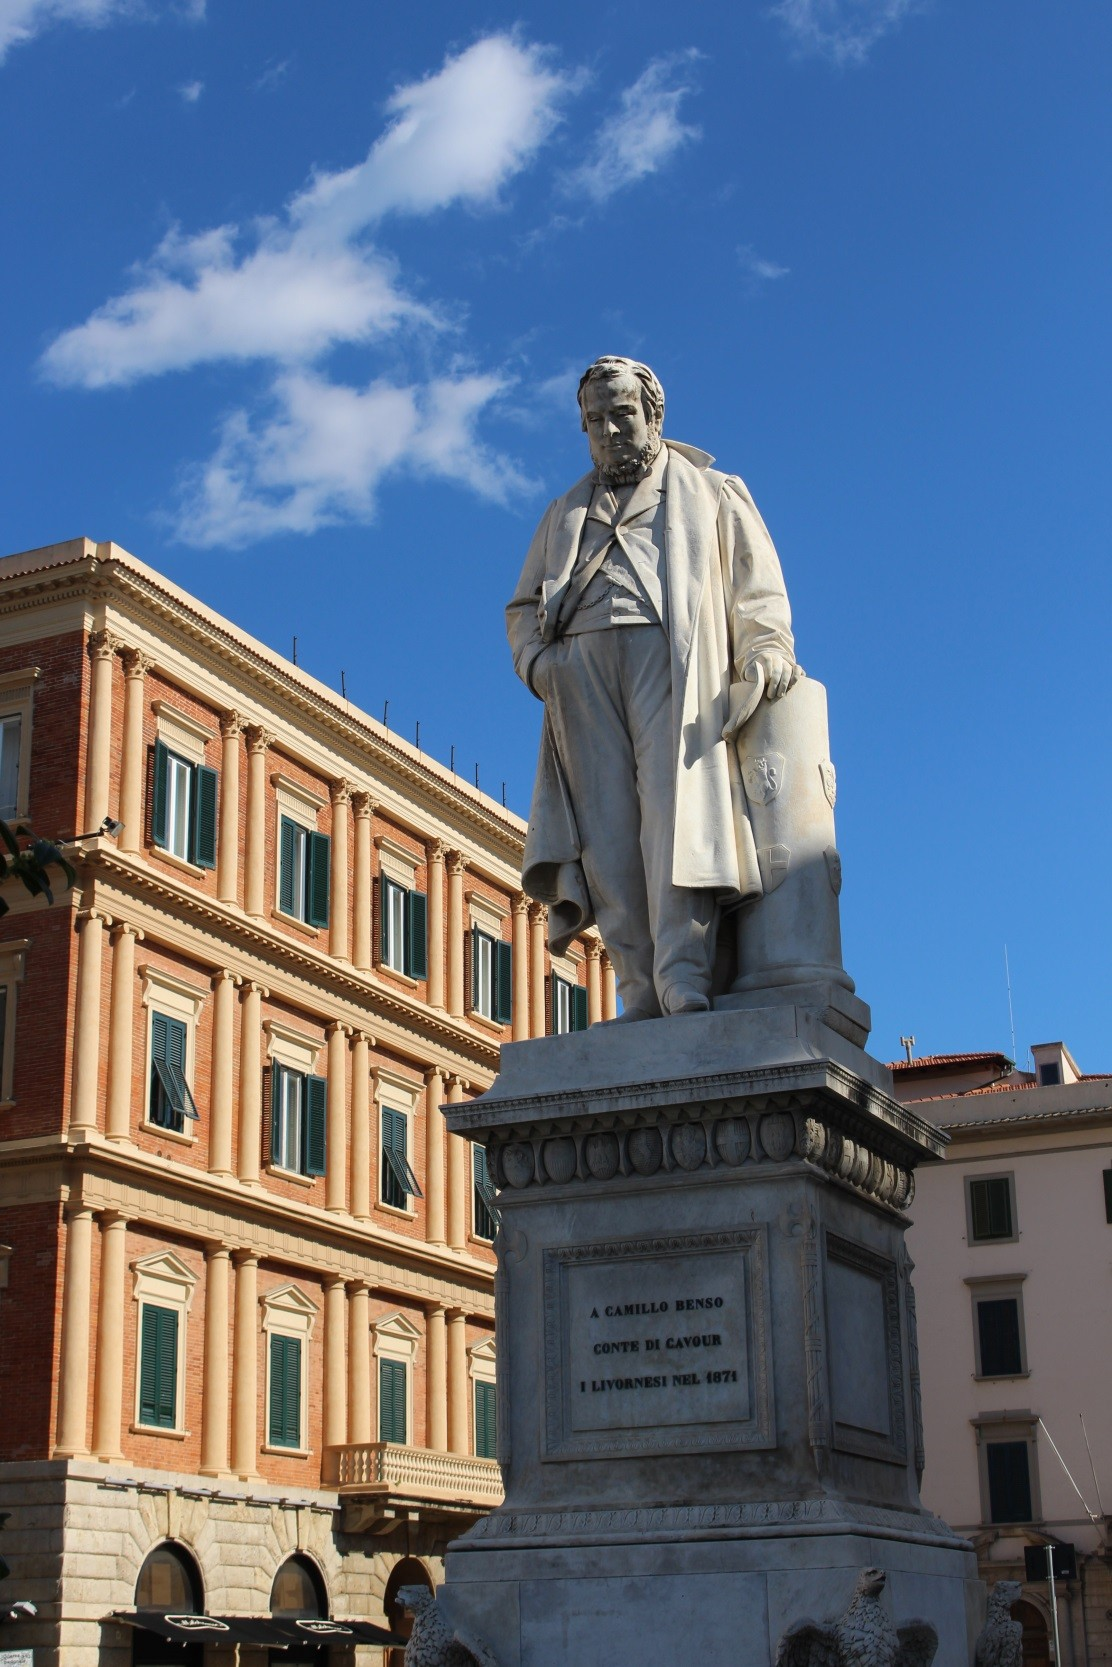 Discover the charm of Livorno: Piazza Cavour